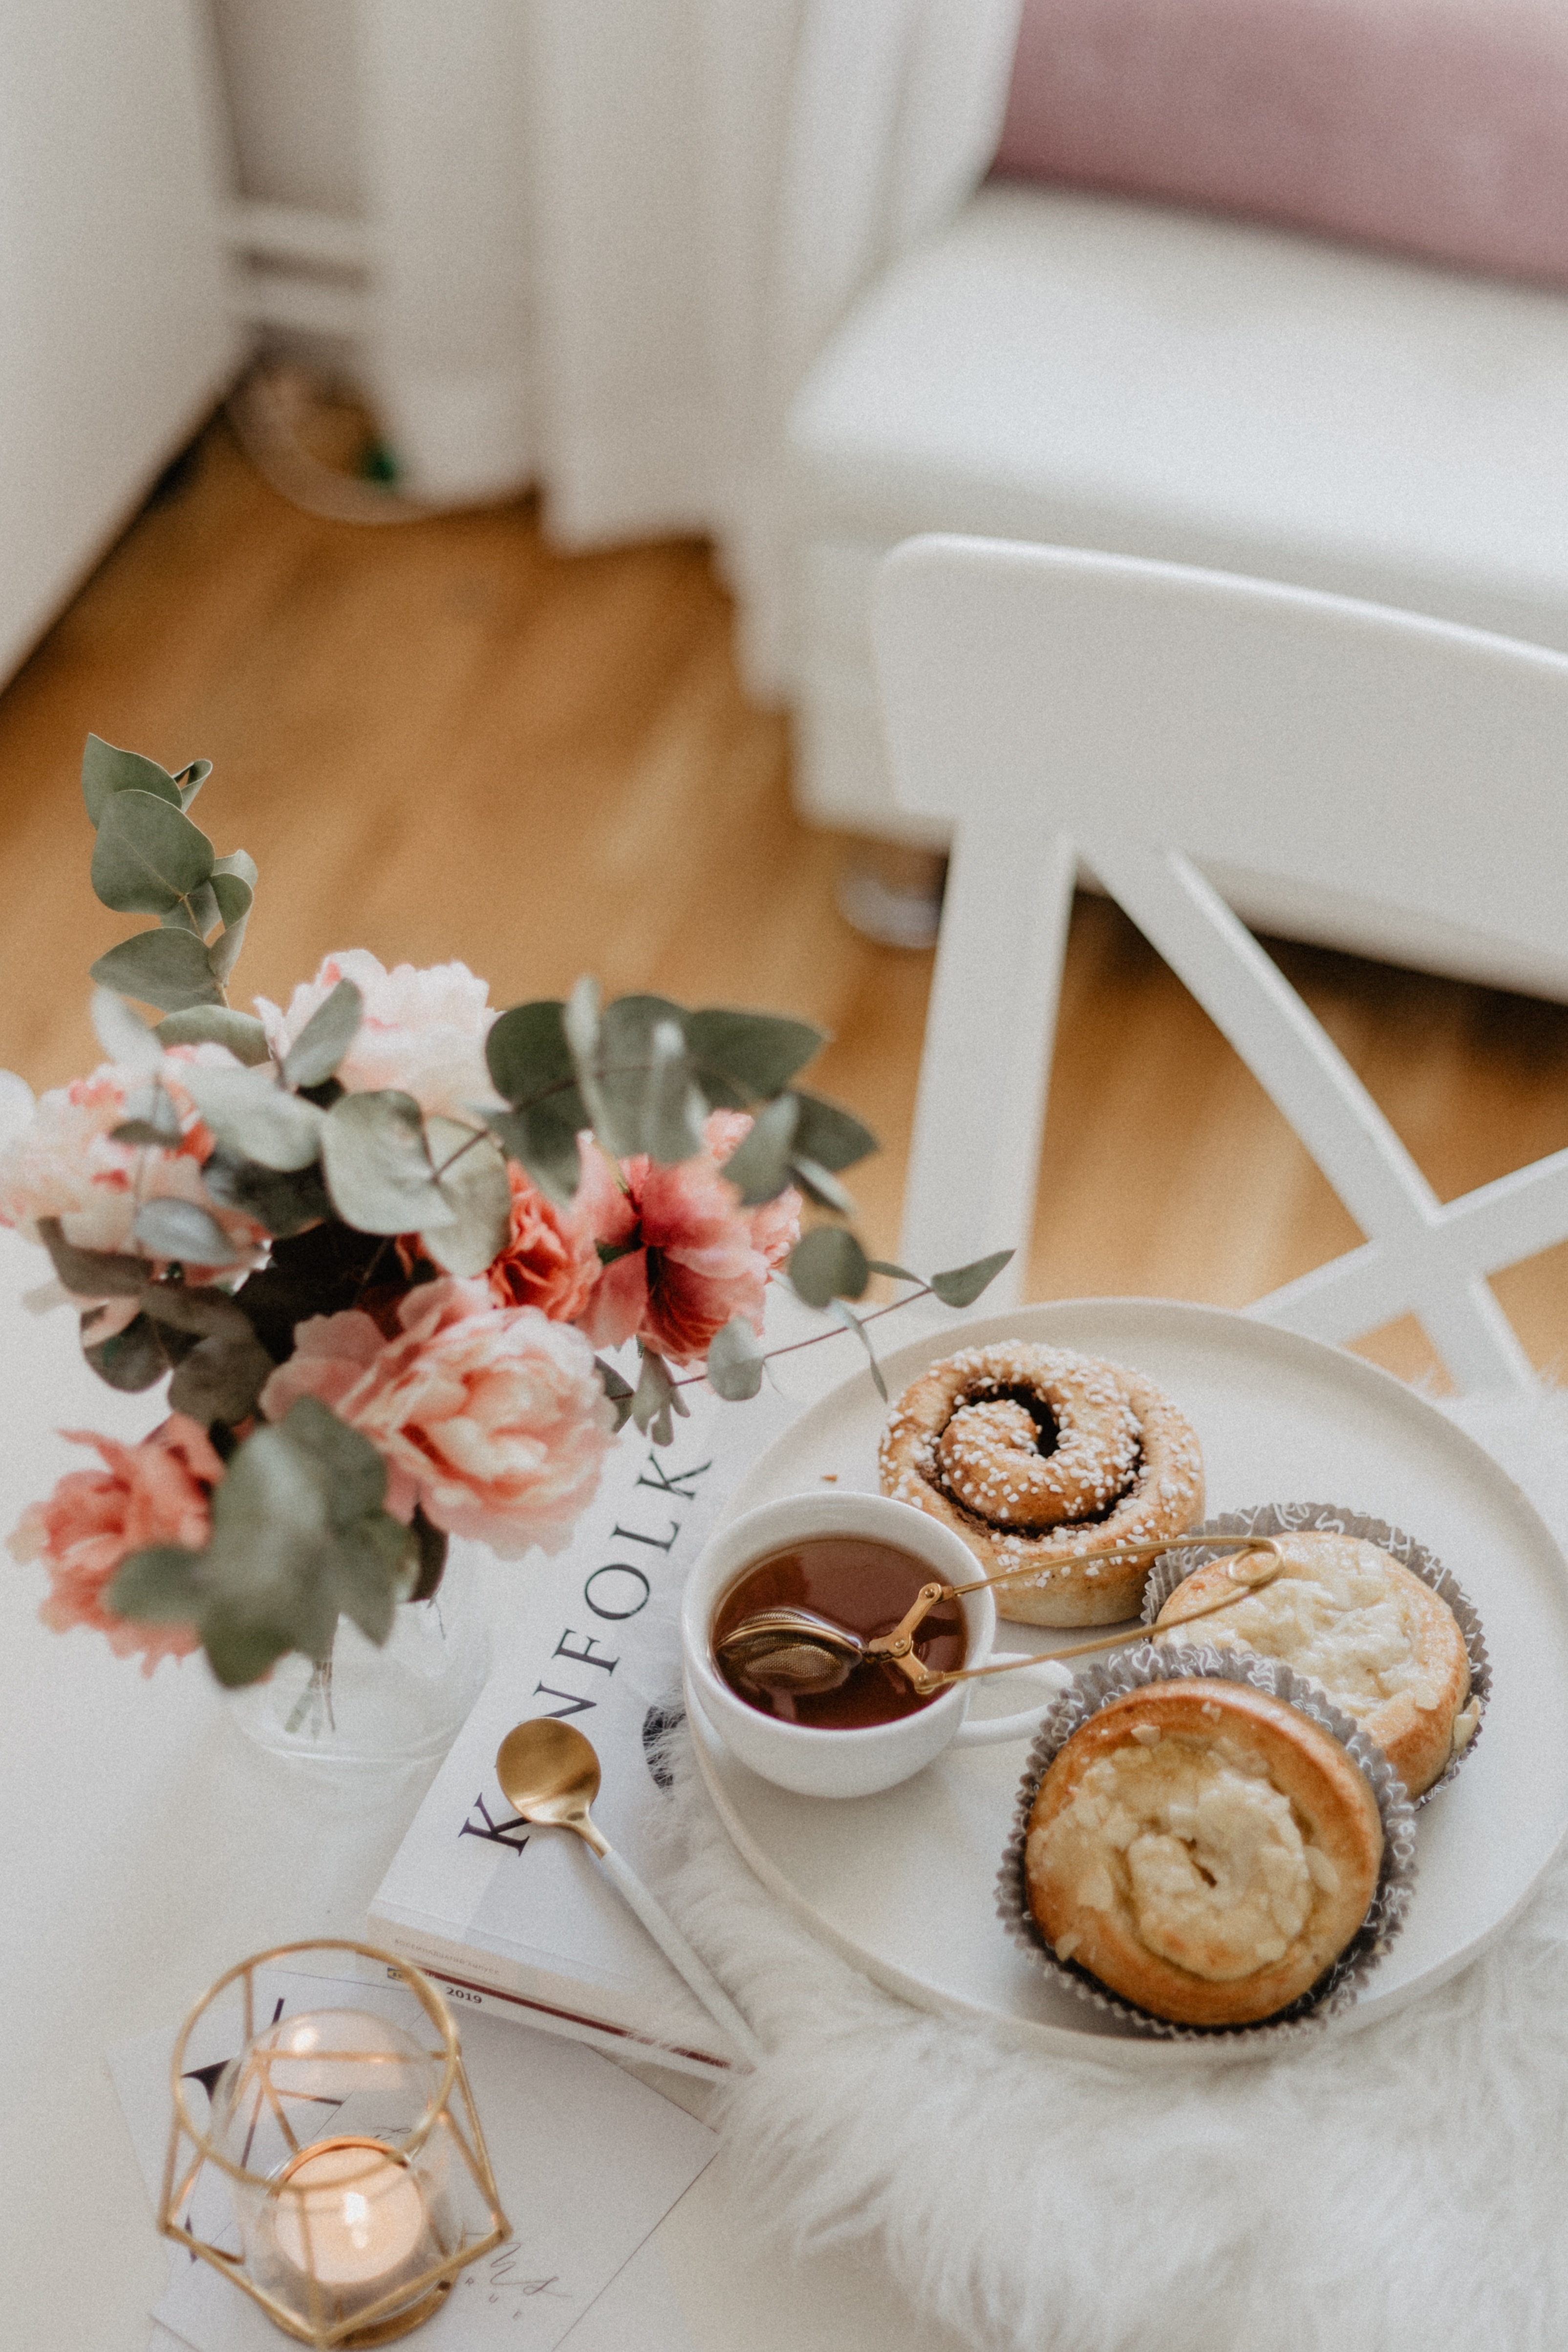 There is a white table and chair in the middle of the image. On the white table is a vase with pink flowers in. Next to the flowers is a pile of magazines with a plate of pastries and cakes on with a tiny mug of tea. There is gold